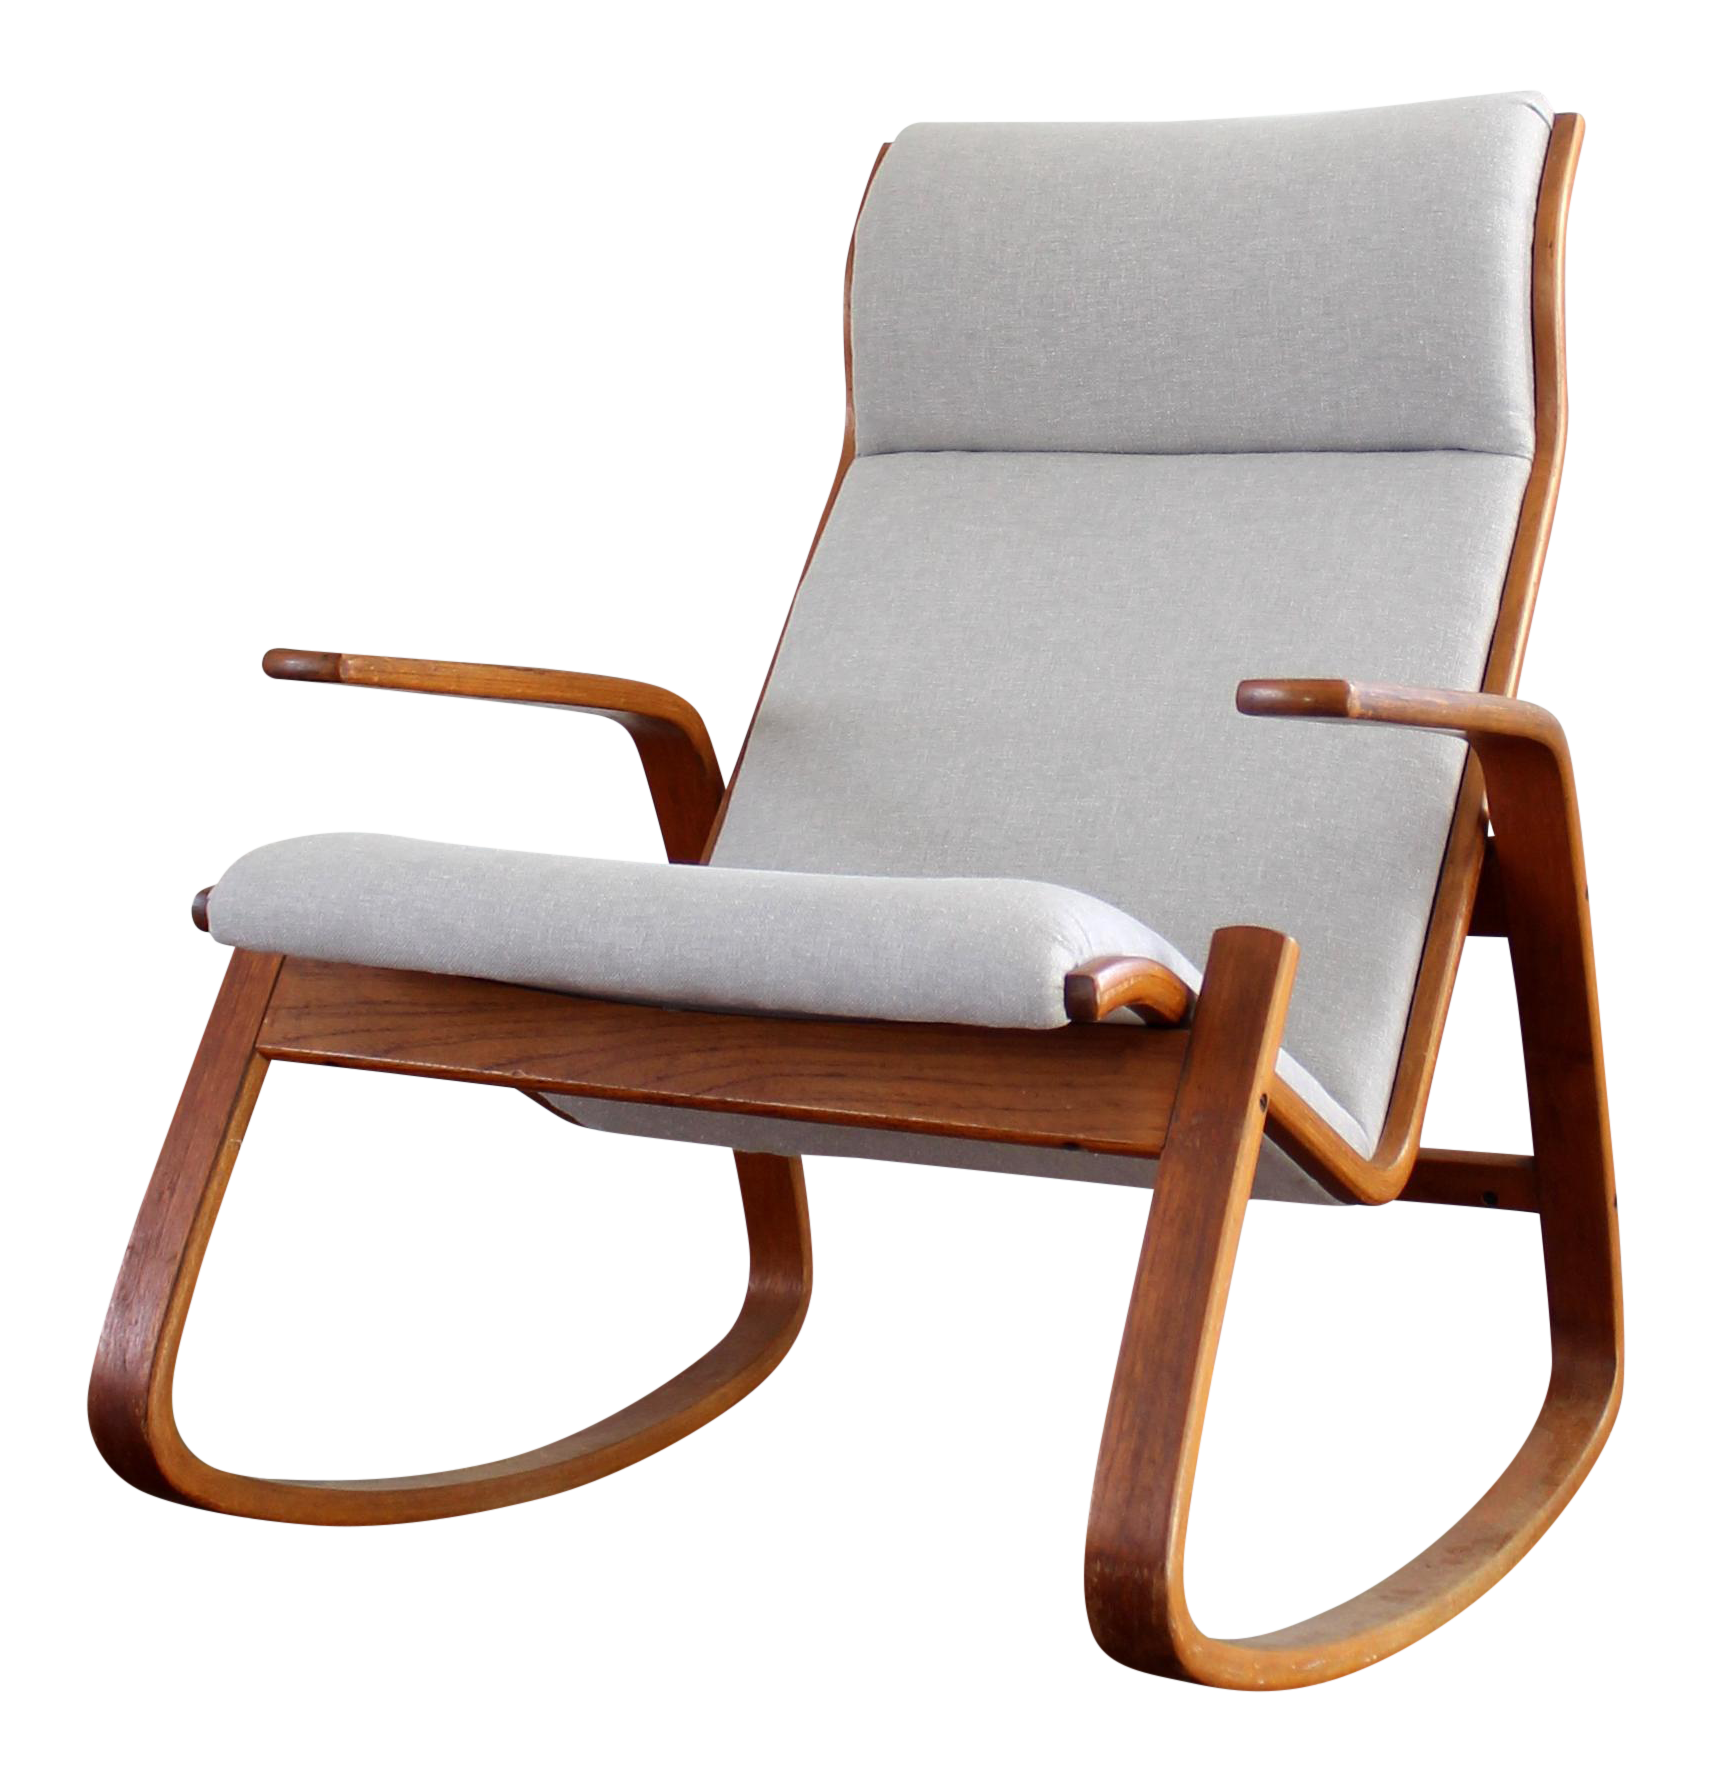 do chairs modern rocking don chair furniture dondo apres